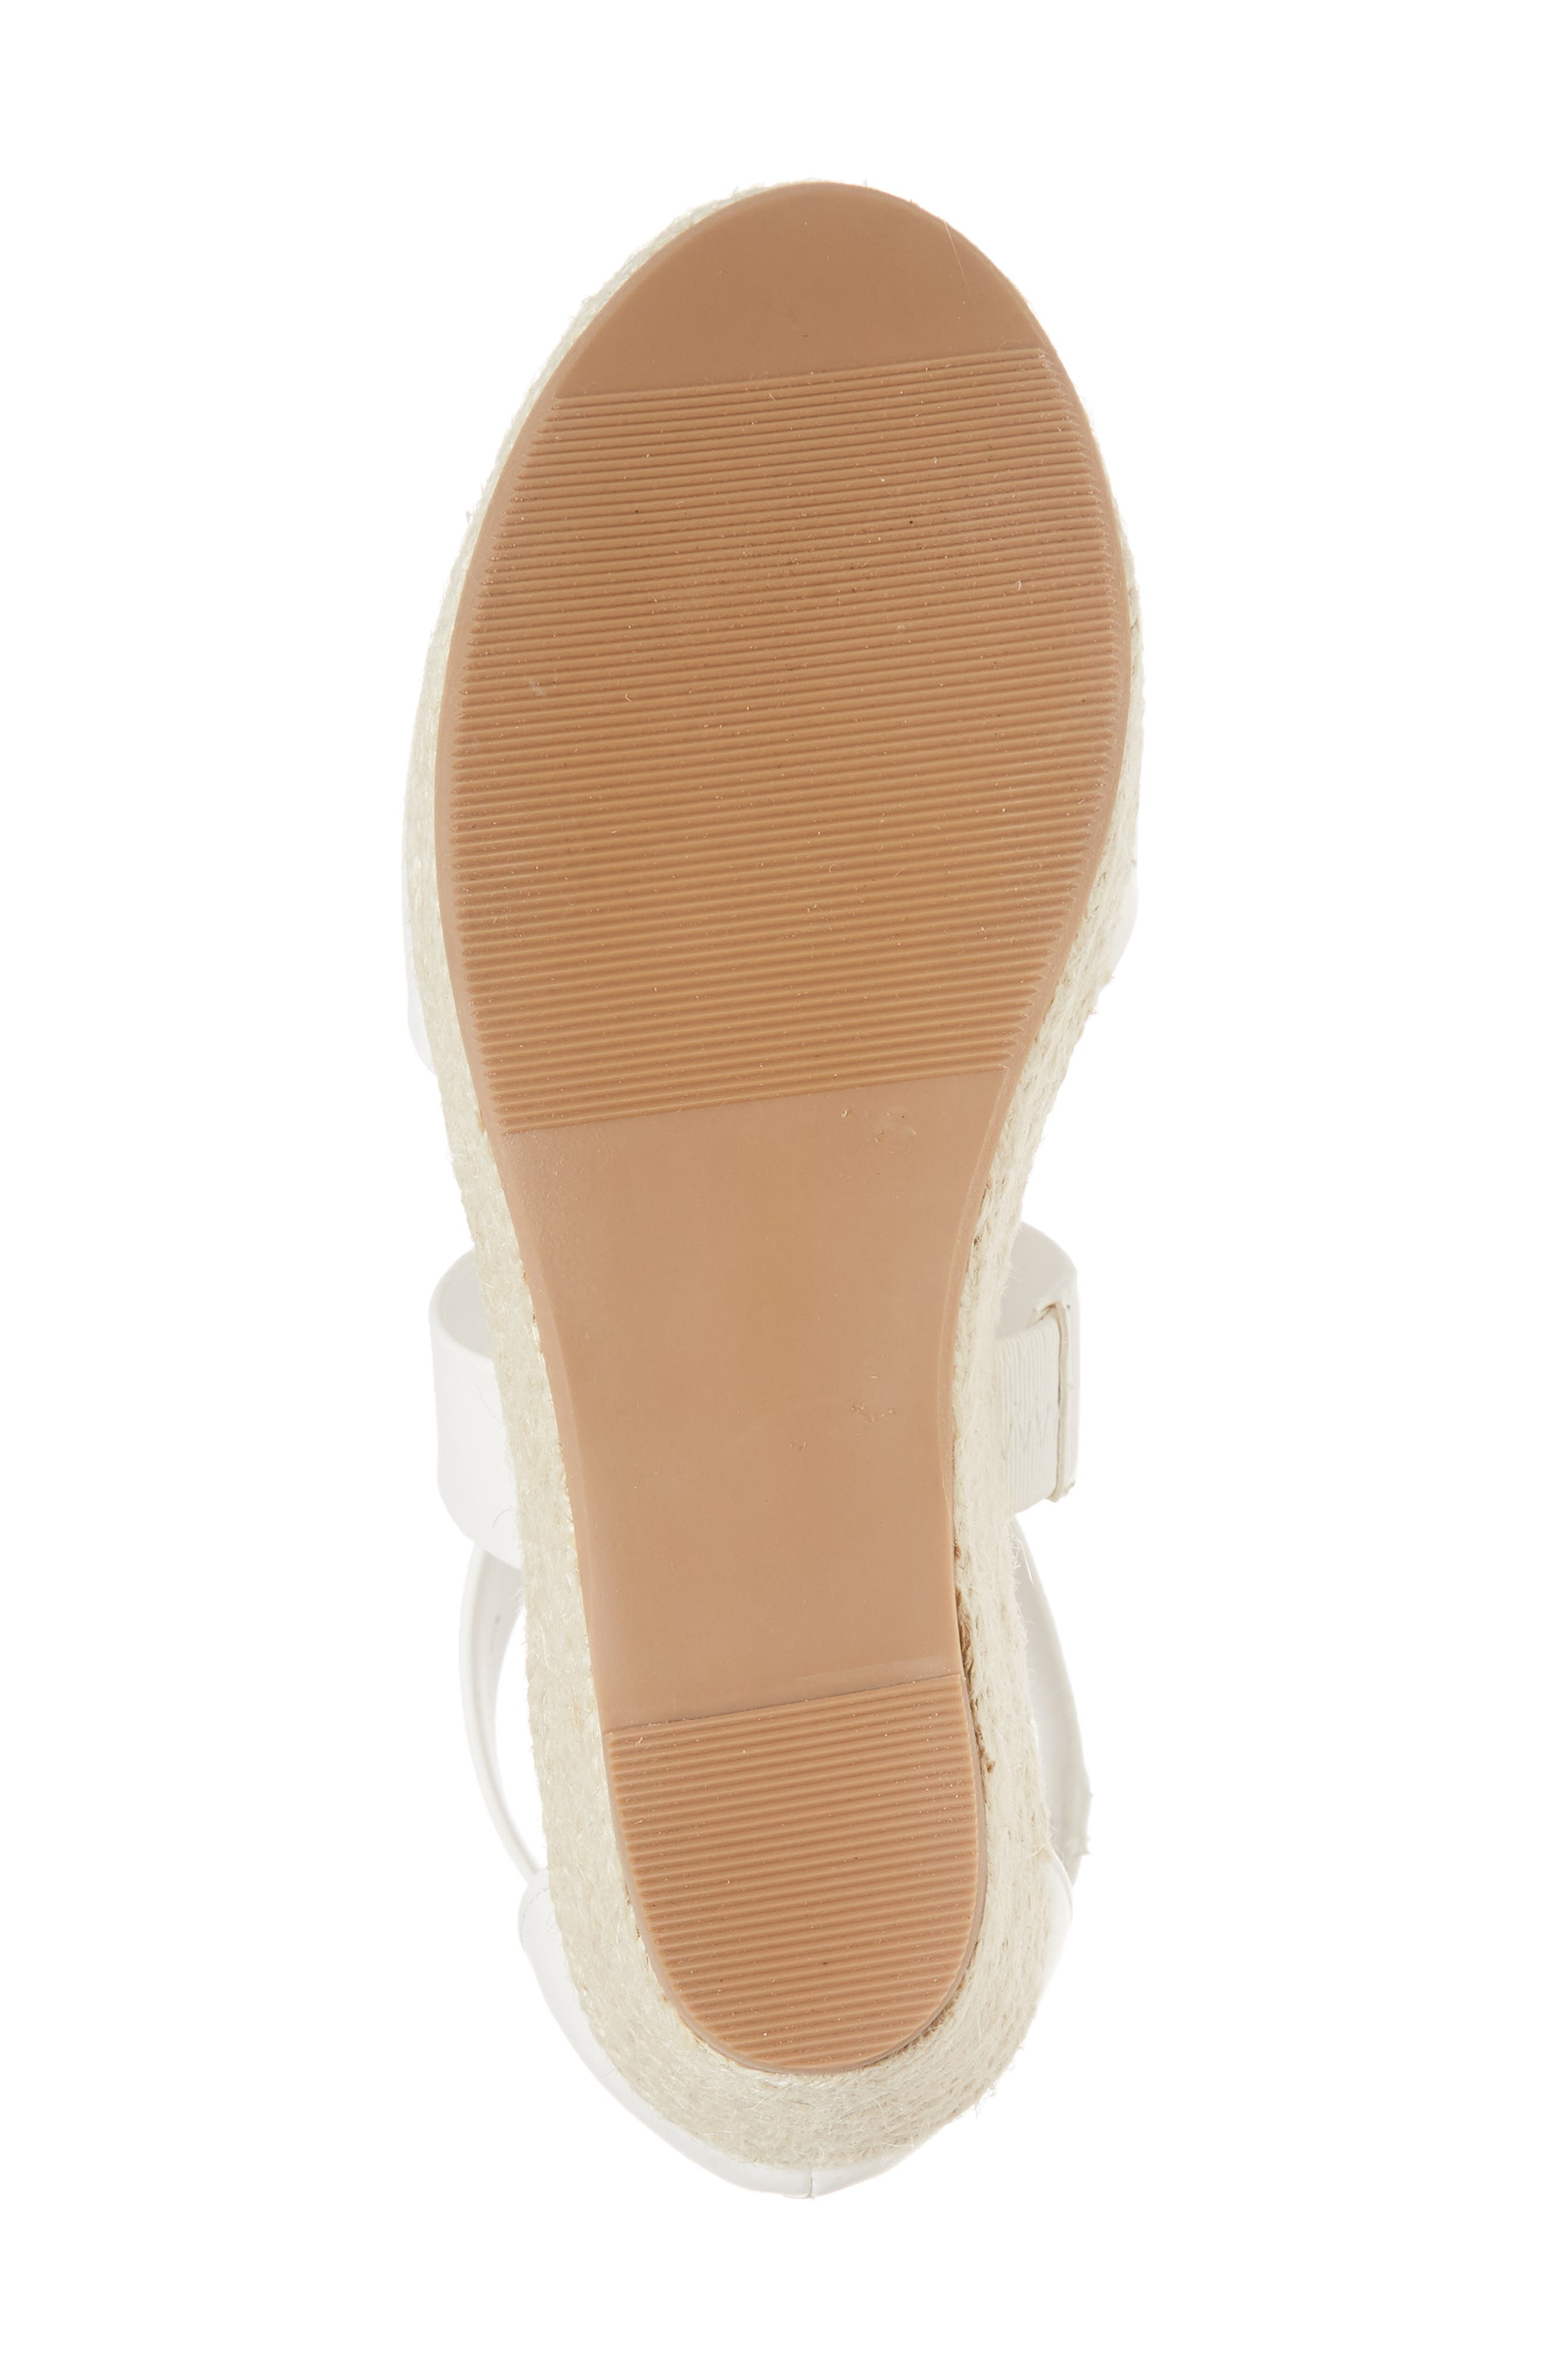 DOLCE VITA,                             Wilma Platform Wedge Sandal,                             Alternate thumbnail 6, color,                             100